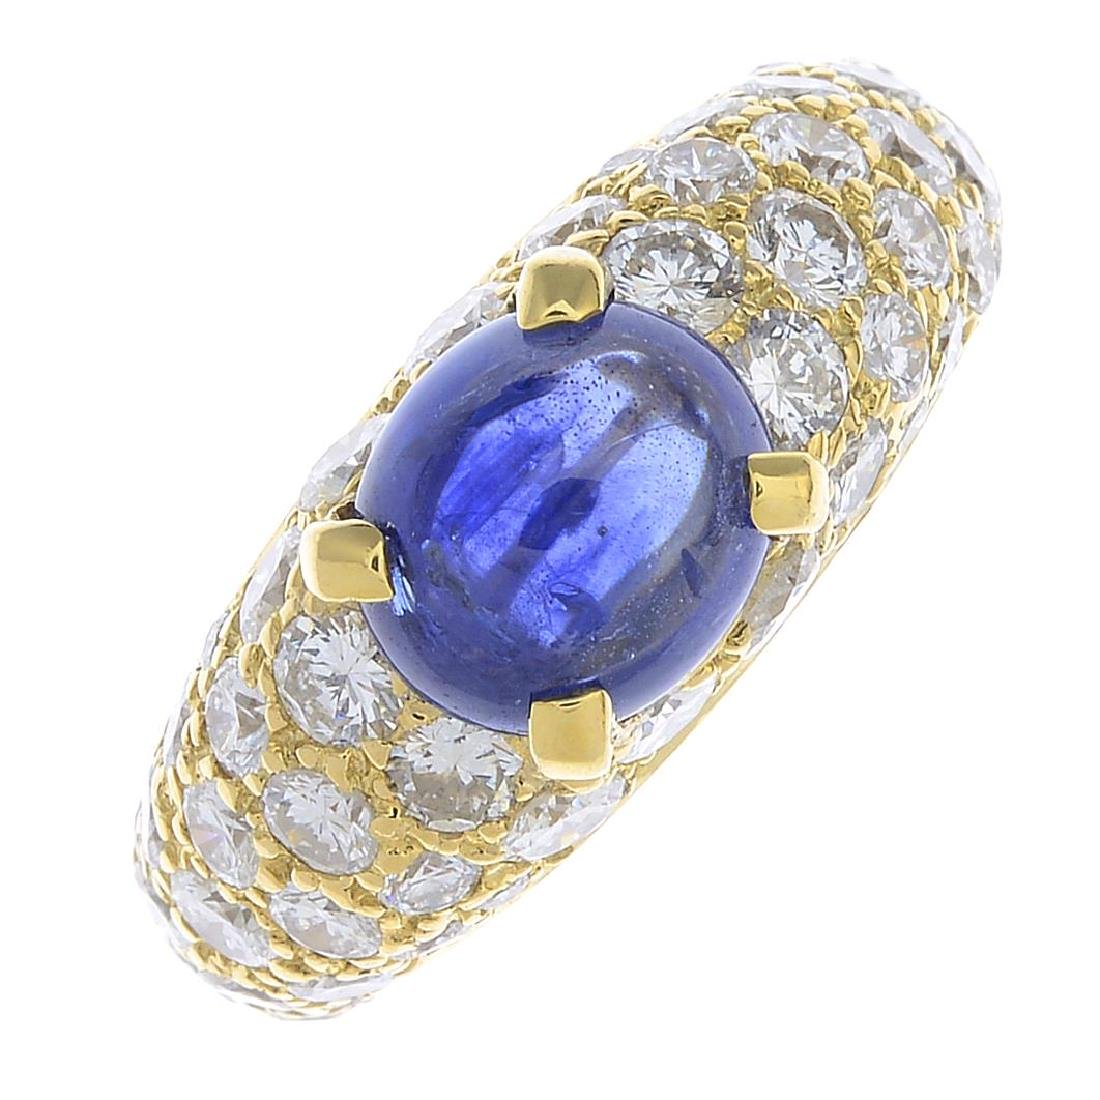 A sapphire and diamond dress ring. The oval sapphire